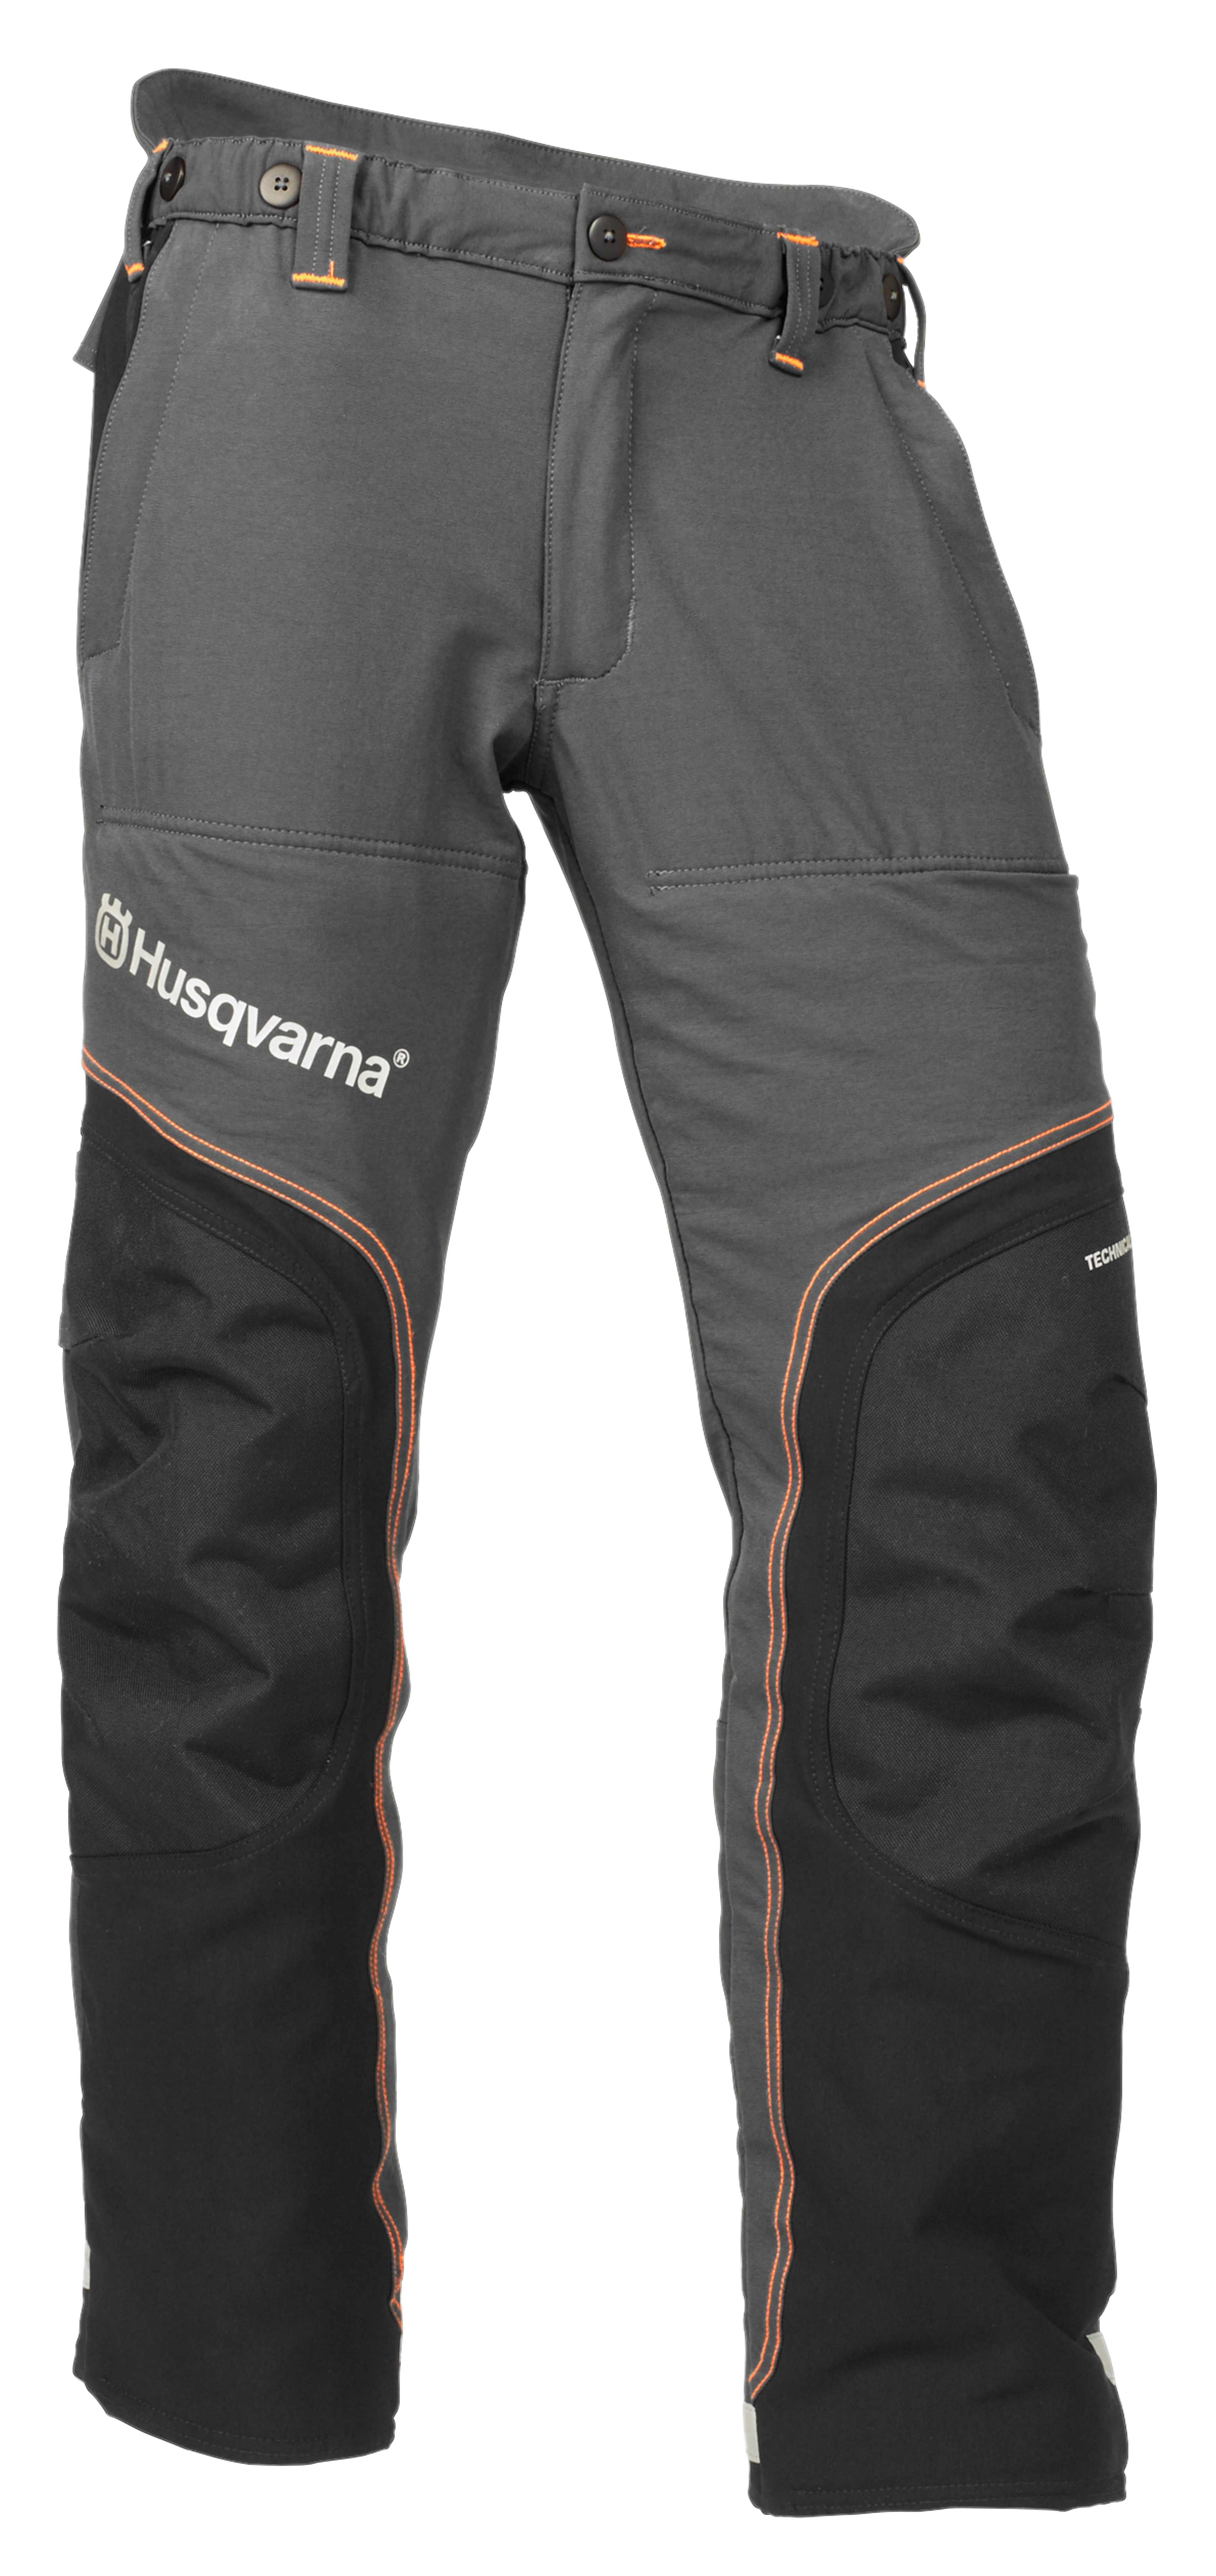 Image for Technical Chainsaw Pants                                                                                                         from HusqvarnaB2C